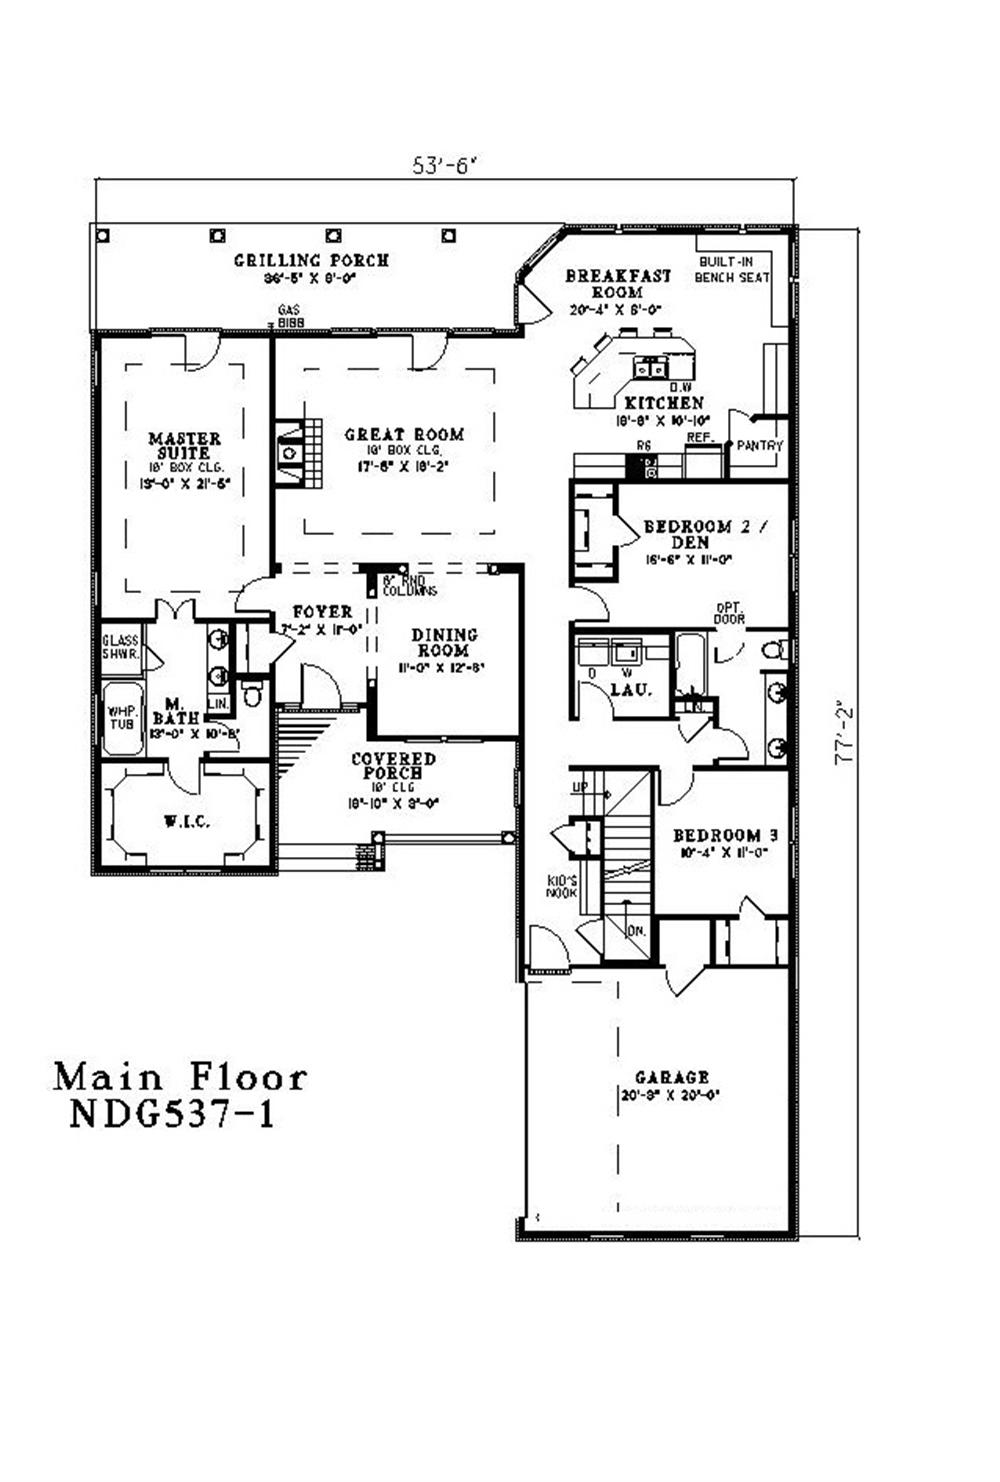 153-1384 basement option